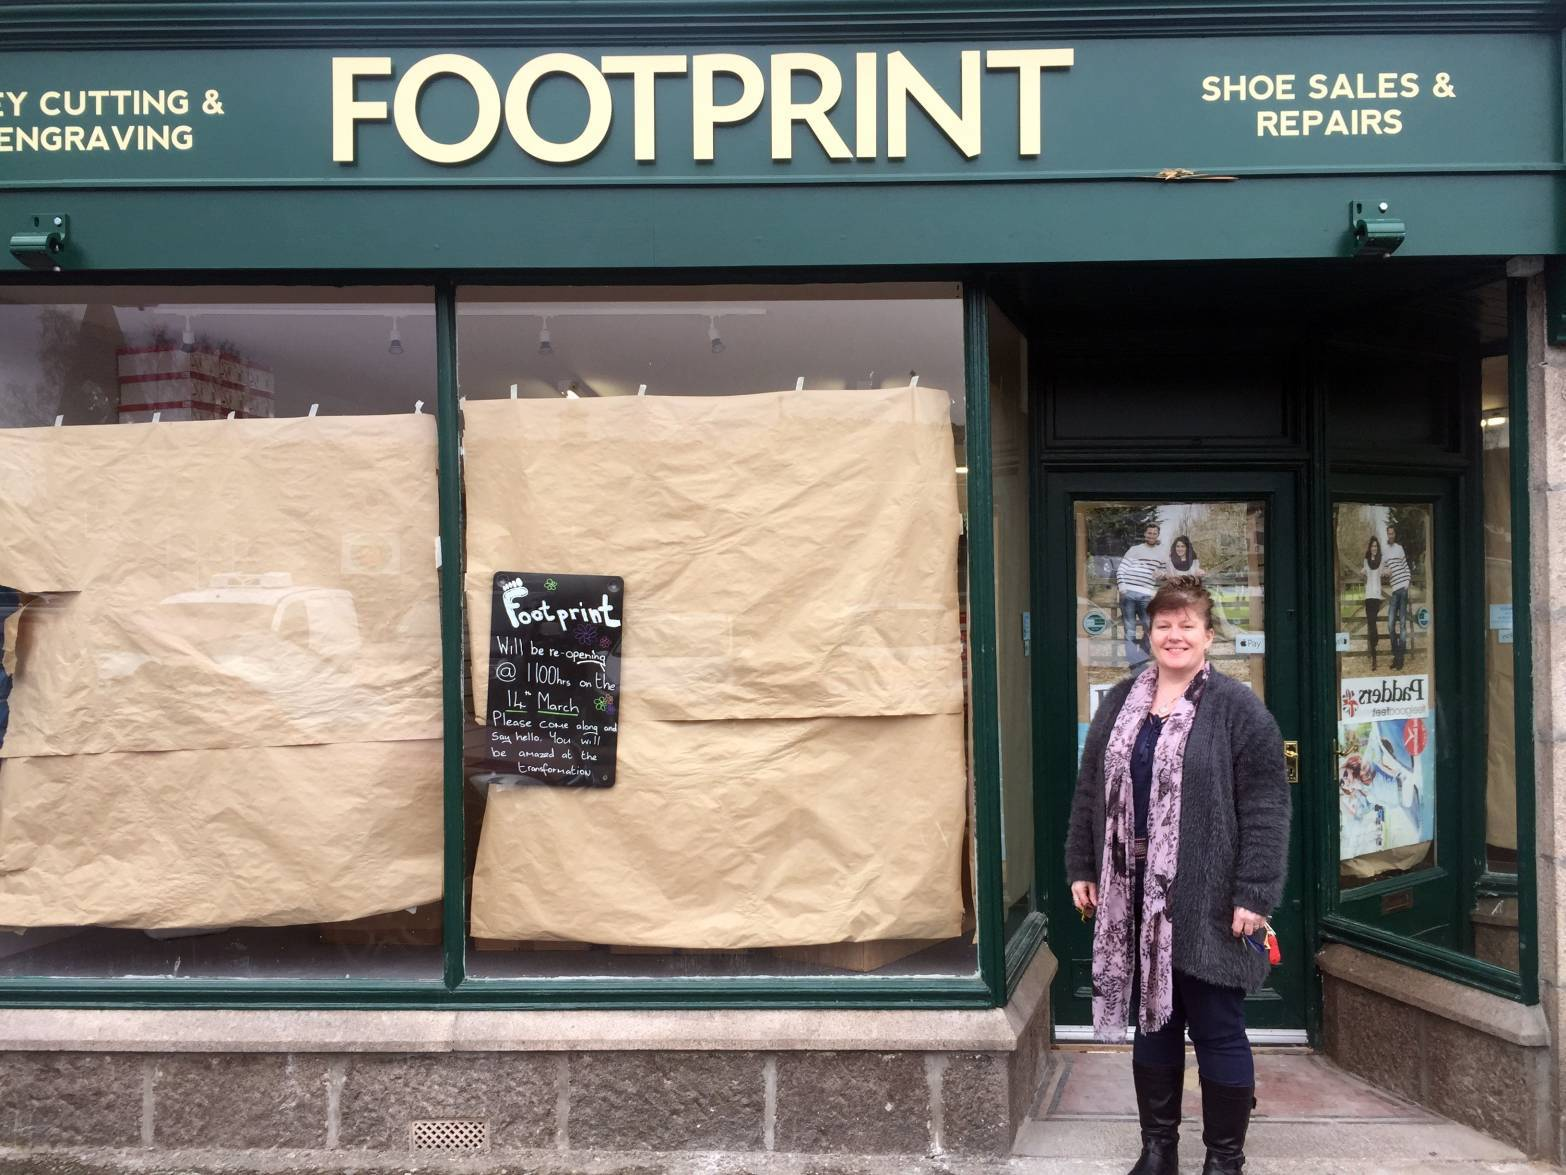 Footprint in Aboyne which was hit by flooding is to reopen today.